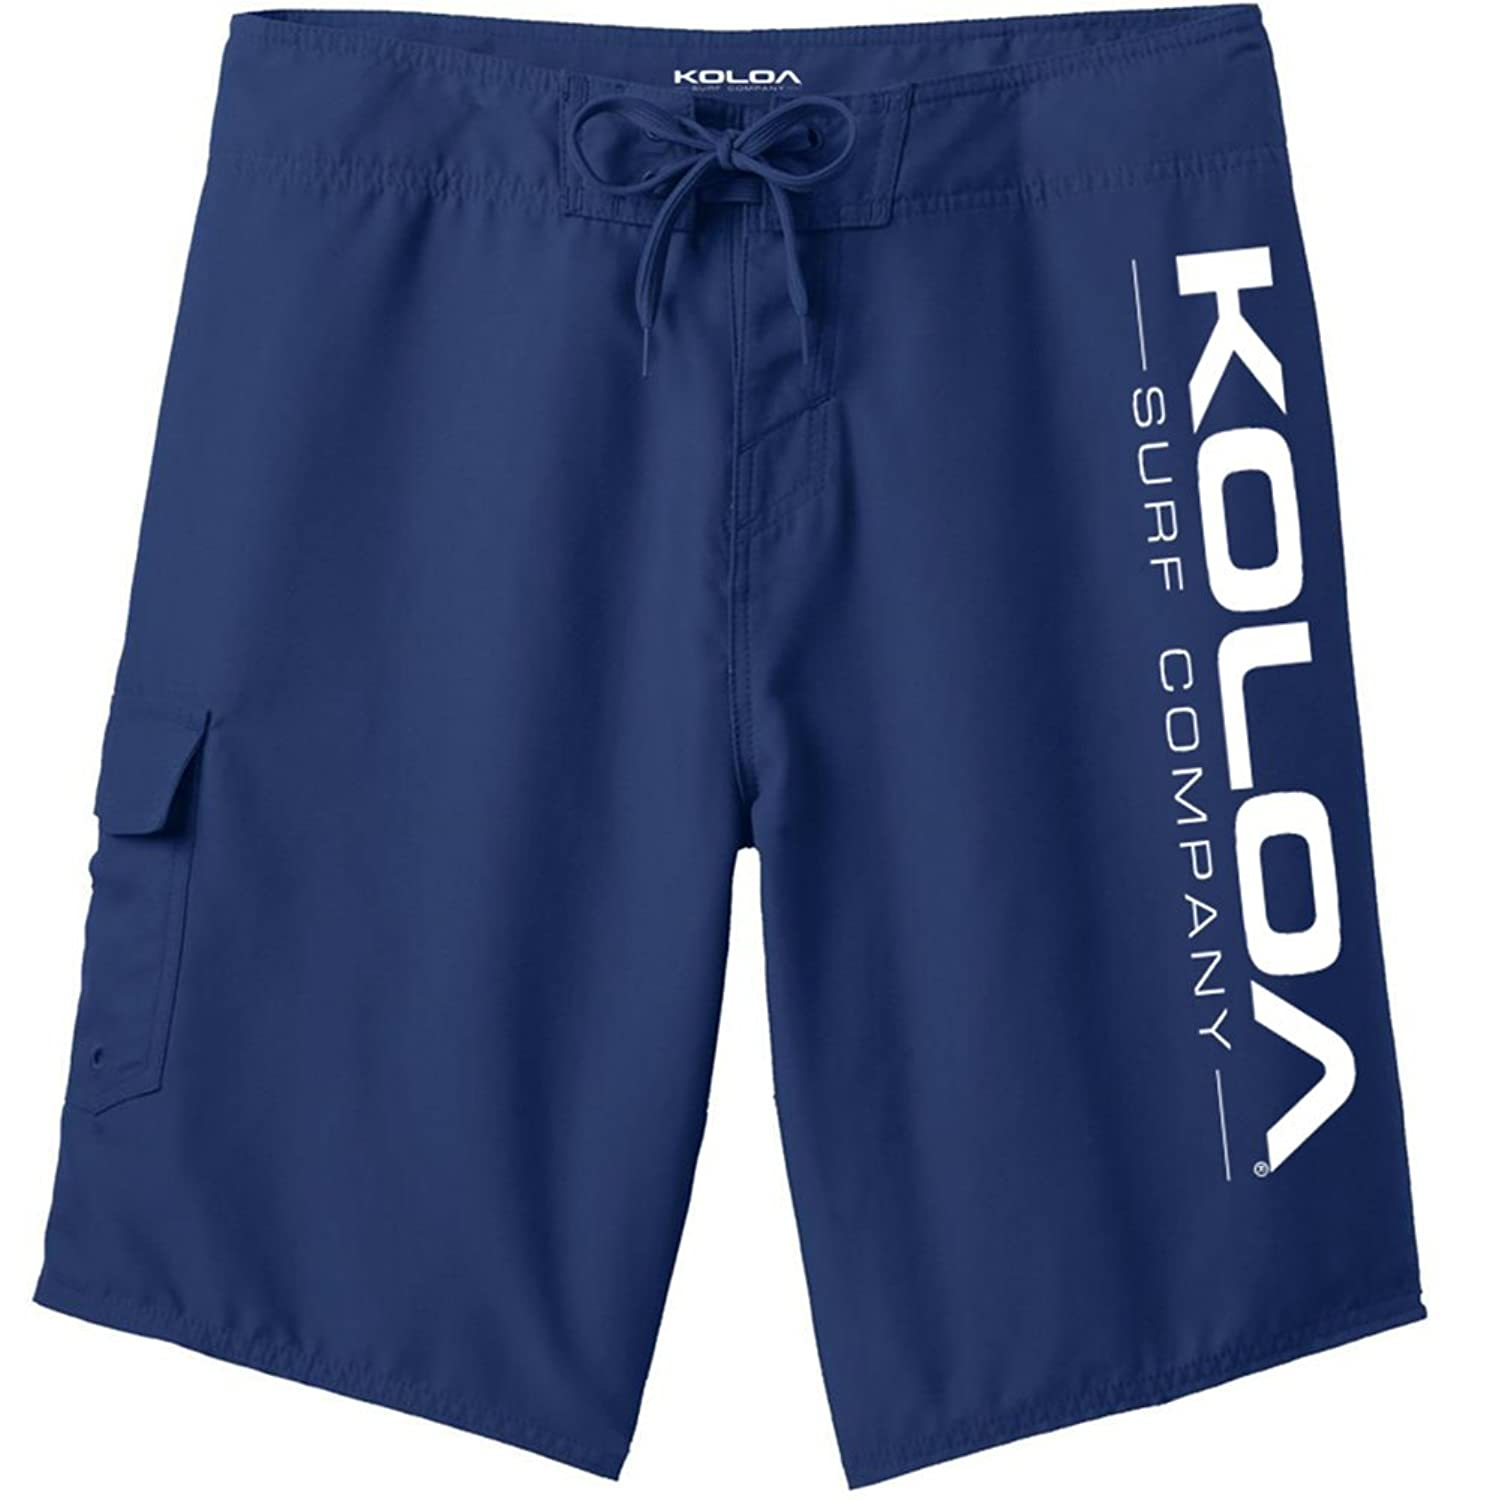 32eab649f8 50%OFF Koloa Surf Co. Logo Brand Boardshorts in Young Mens ...